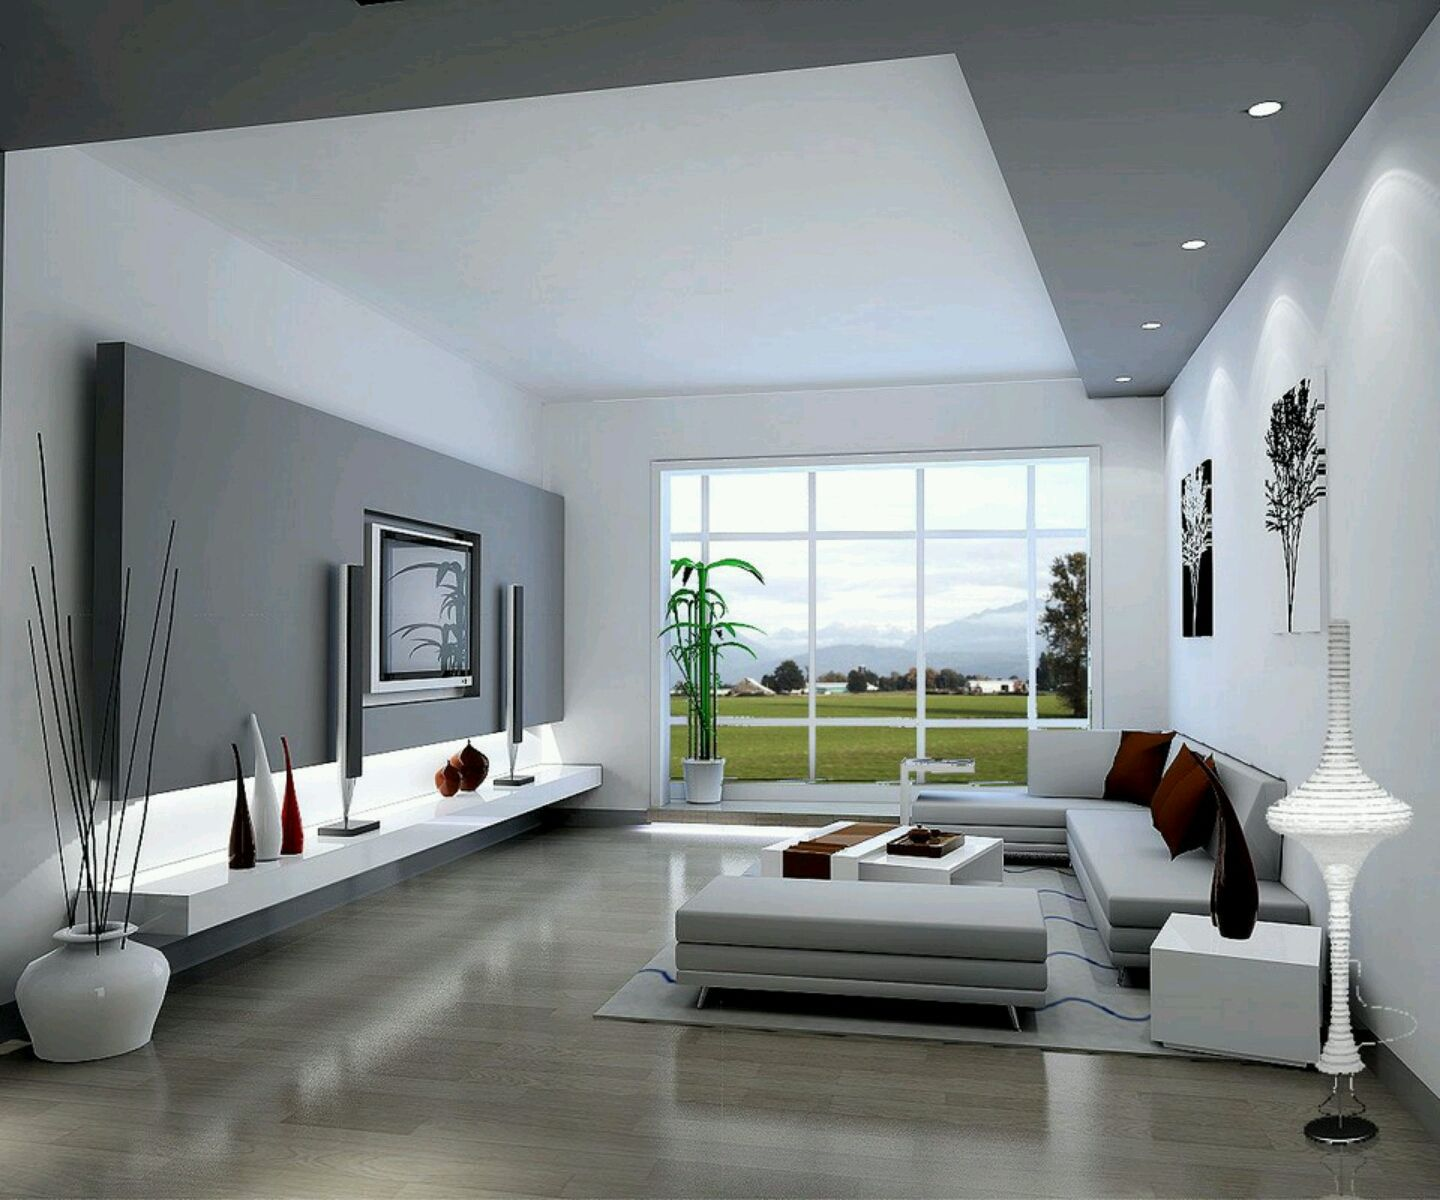 Living Room Modern Ideas On Stylish Home Decor Styles  Contemporary Wall Cabinet Design White And Grey Paint Color Painting 25 Best Designs living rooms